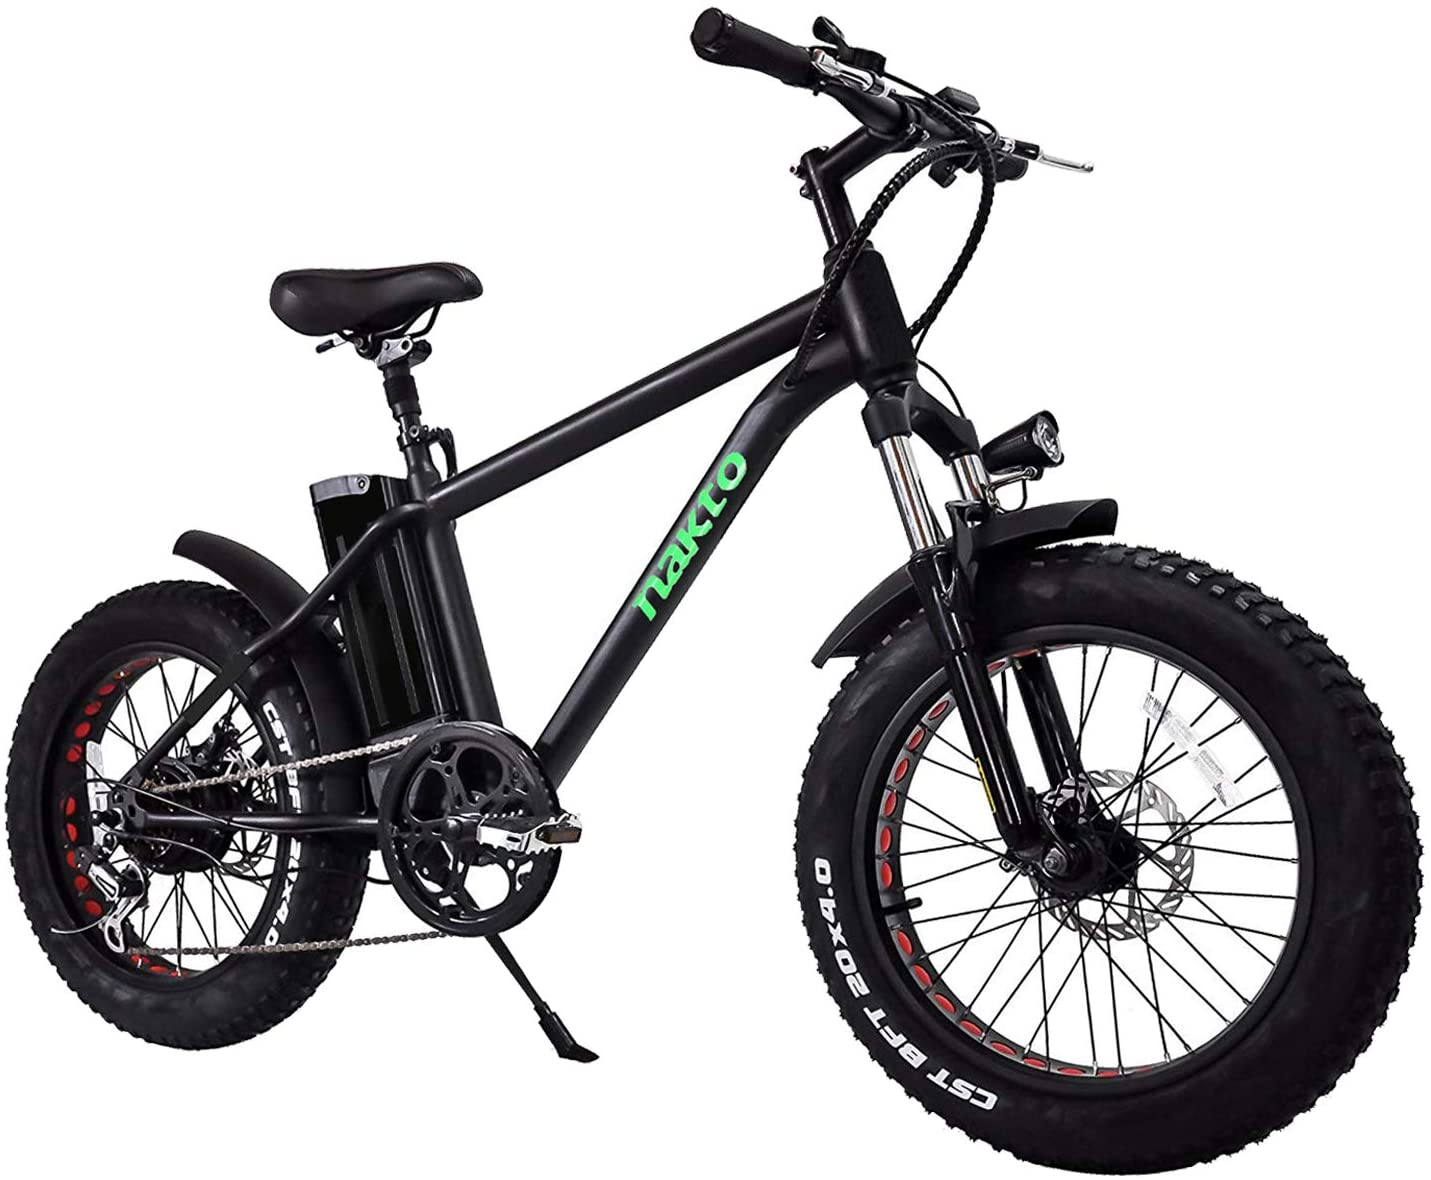 NAKTO FAT TIRE MINI CRUSIER EBIKE 20 INCHES